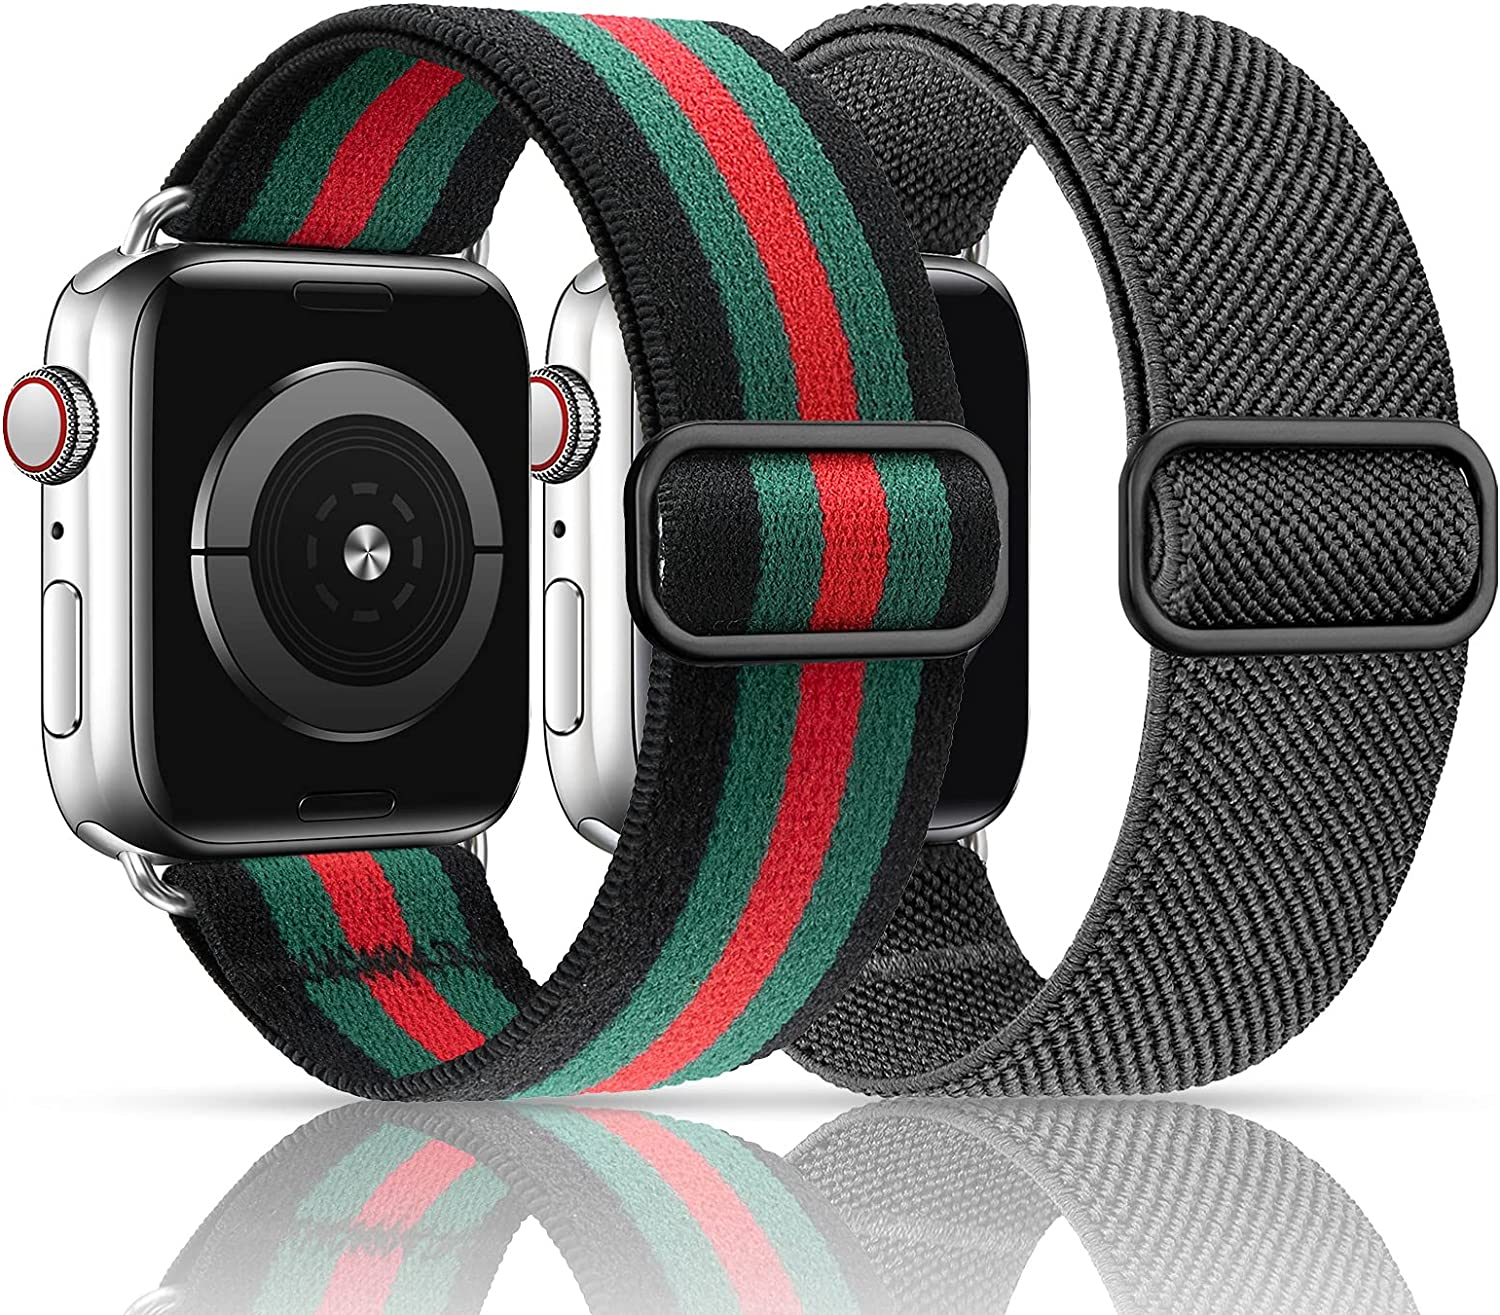 MEULOT Stretchy Nylon Solo Loop Band Compatible with Apple Watch Band 42mm 44mm 2-Pack Adjustable Braided Sport Women Men iWatch Series 6/5/4/3/2/1 SE Grey/Black Green Stripe 42/44